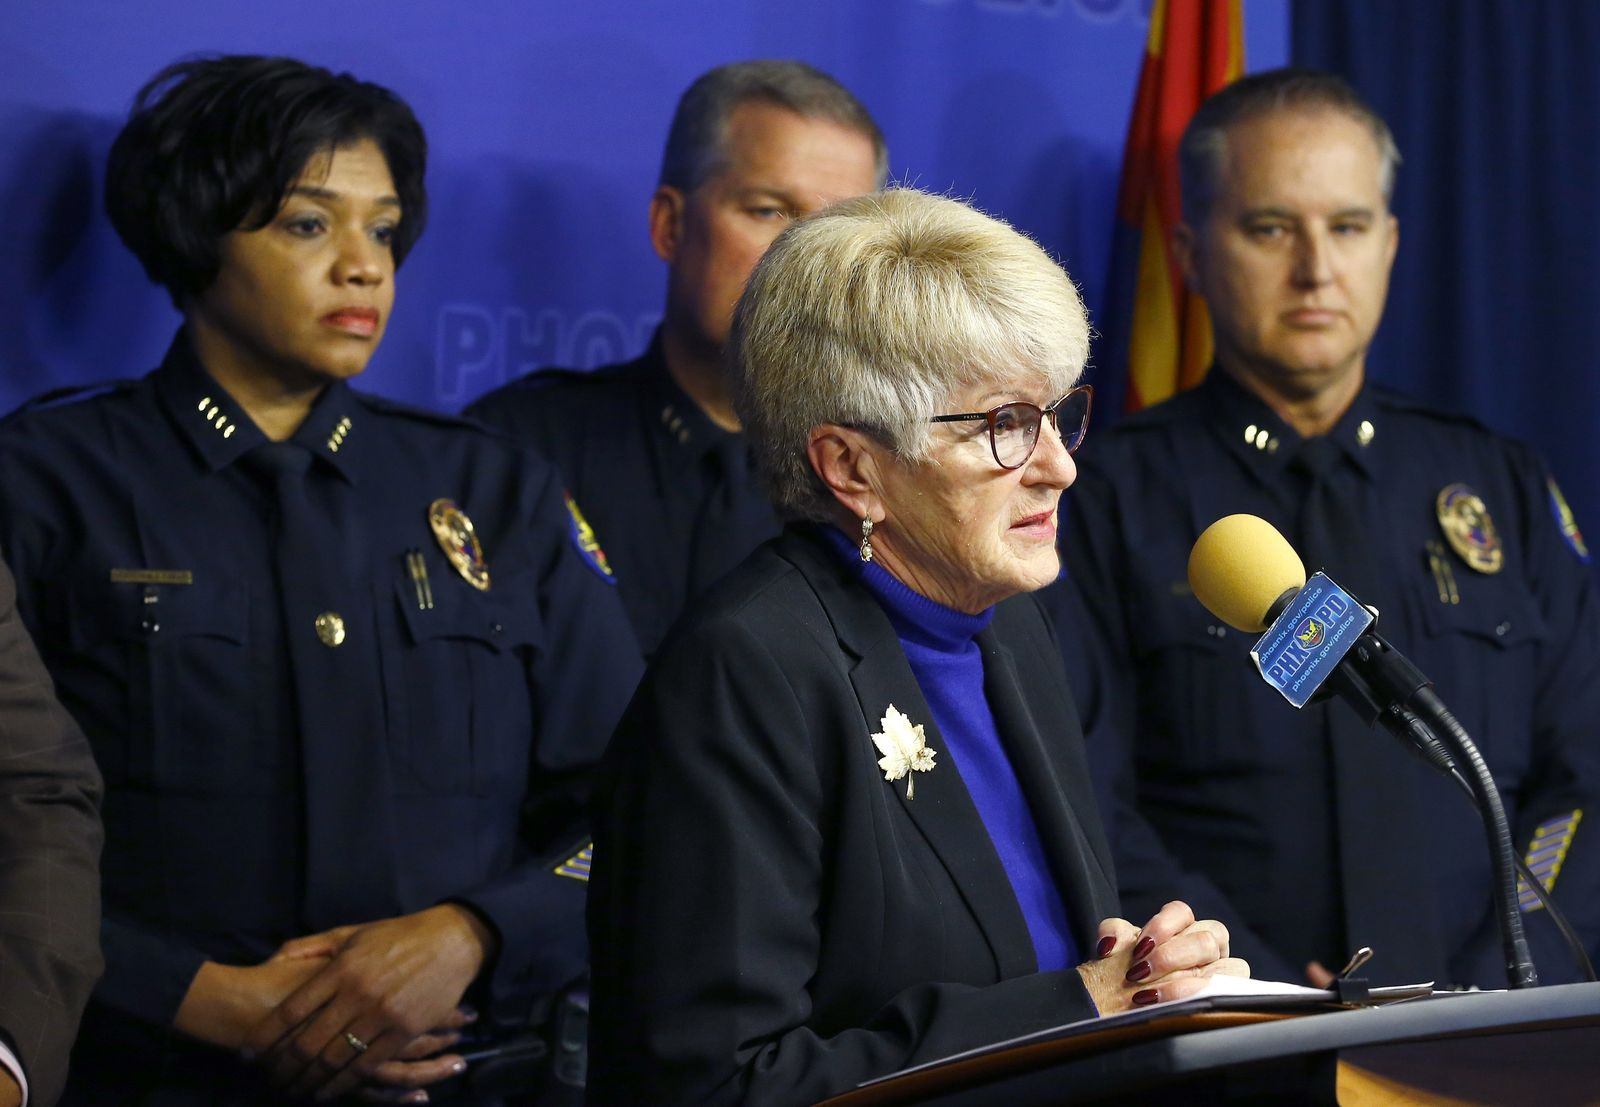 Phoenix Mayor Thelda Williams, front right, speaks during a news conference as she is joined by Phoenix Police Chief Jeri Williams, left, and other members of law enforcement as they announce that Nathan Sutherland, a licensed practical nurse, has been arrested on one count of sexual assault and one count of vulnerable adult abuse on an incapacitated woman who gave birth last month at a long-term health care facility Wednesday, Jan. 23, 2019, in Phoenix. Sutherland was one of the woman's caregivers at the Hacienda HealthCare facility and he was charged after authorities obtained a court order to take a DNA sample from him, which was compared to DNA of the baby boy, according to police. (AP Photo/Ross D. Franklin)